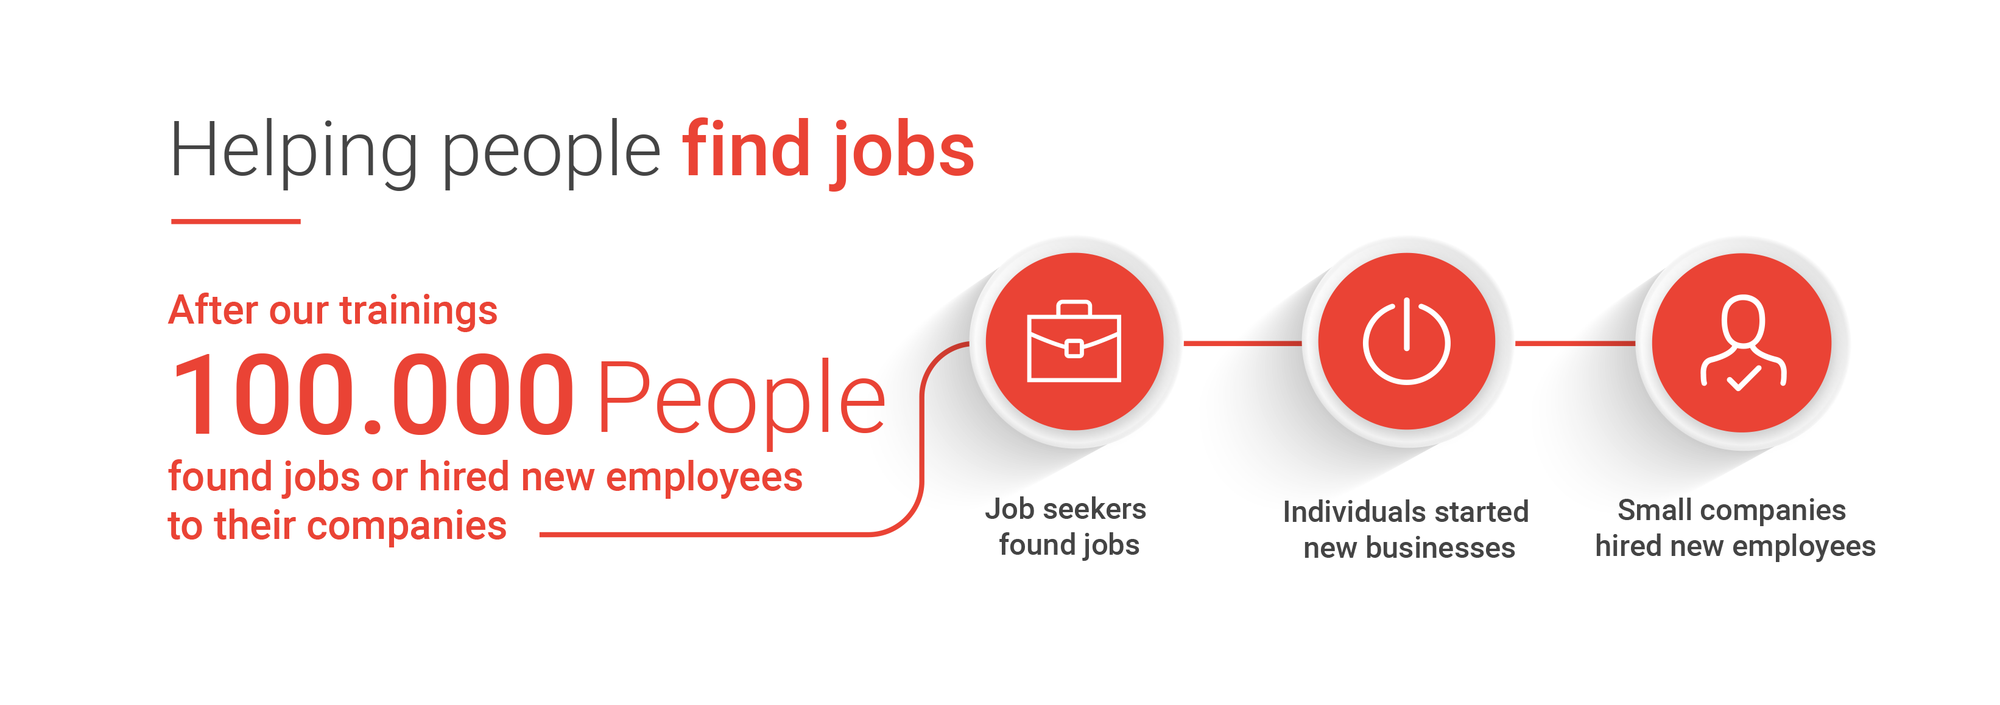 Helping people find jobs